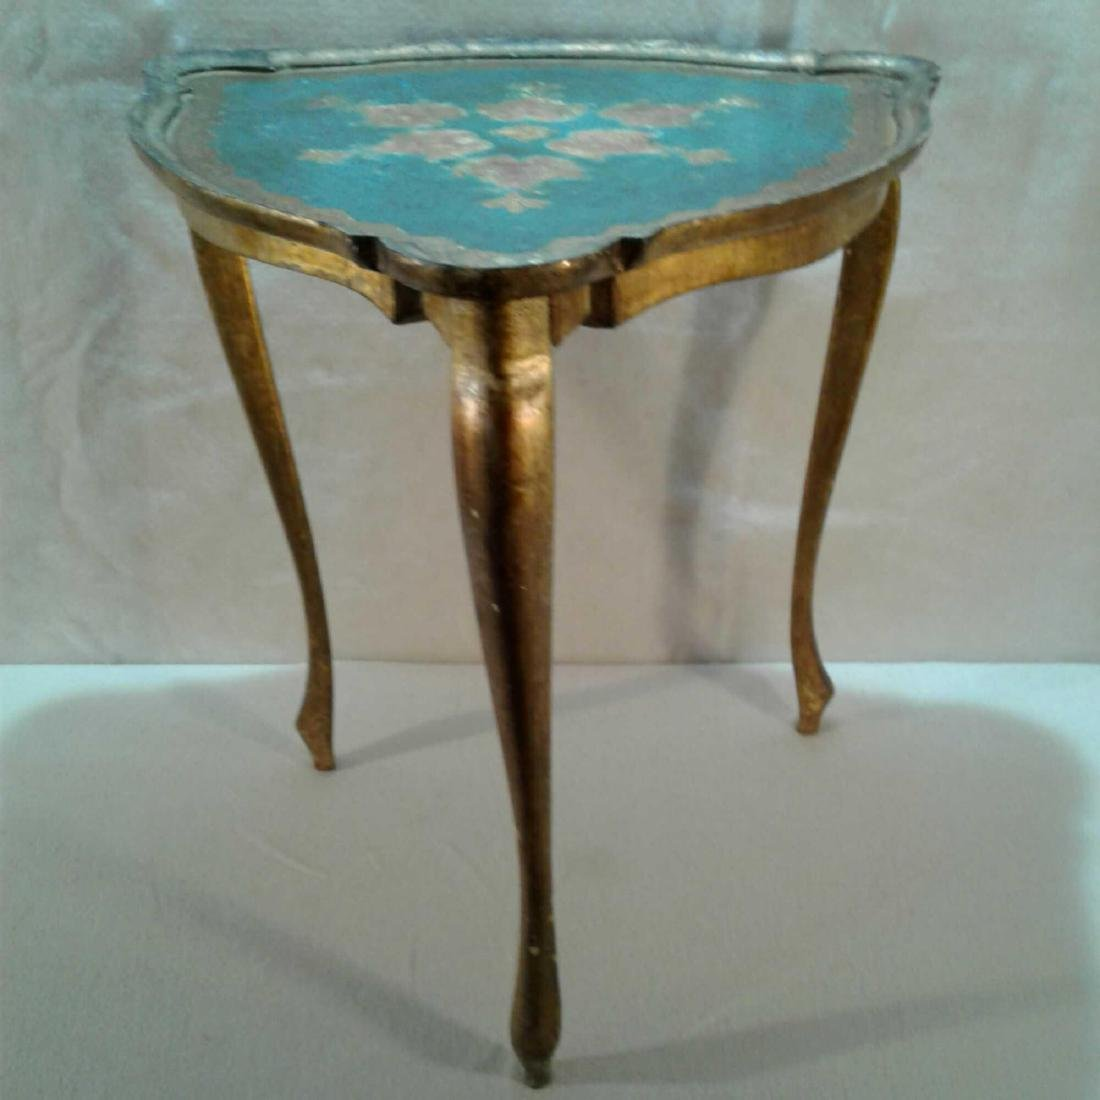 3 Legged End Table (Gold, Blue, with Flowers)